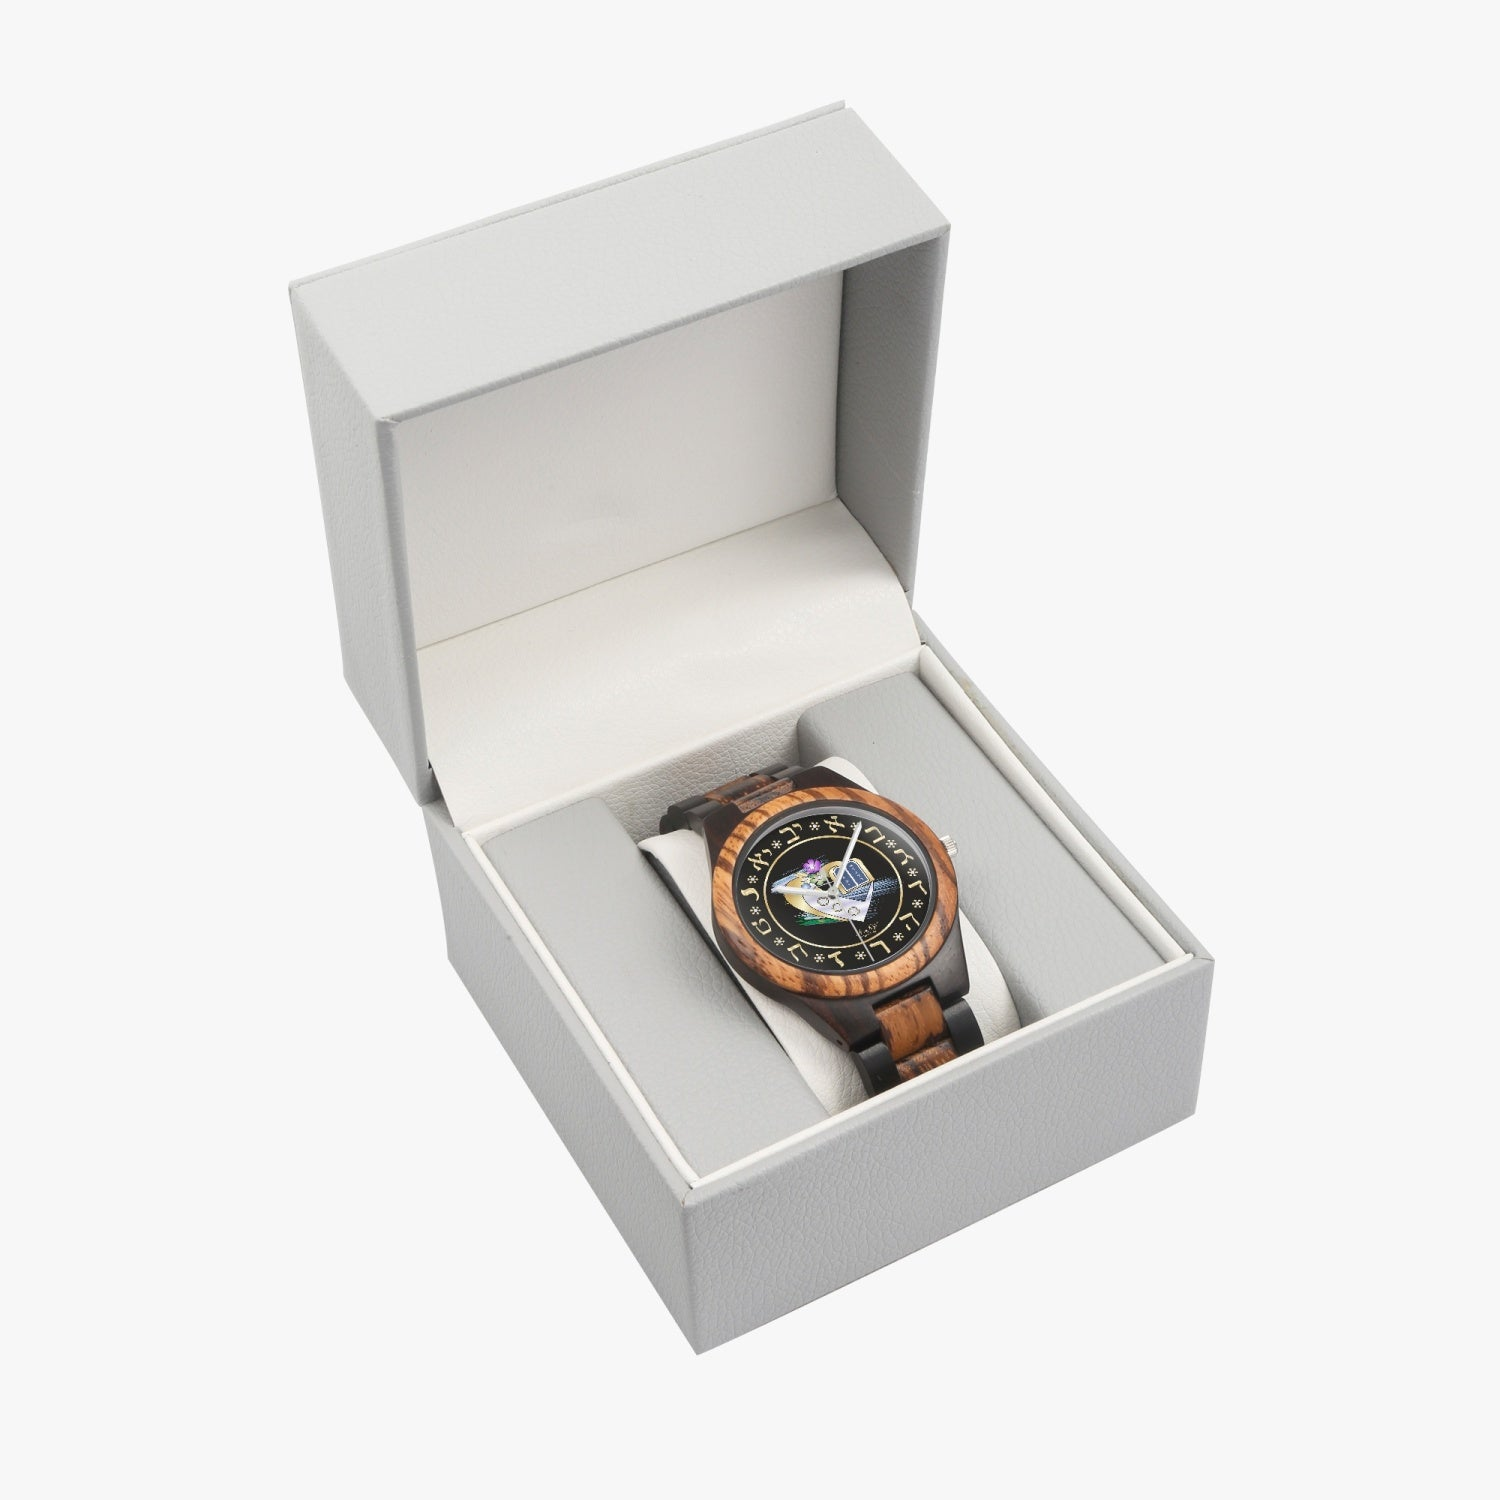 Judaic Heart Wooden Watch By BenJoy